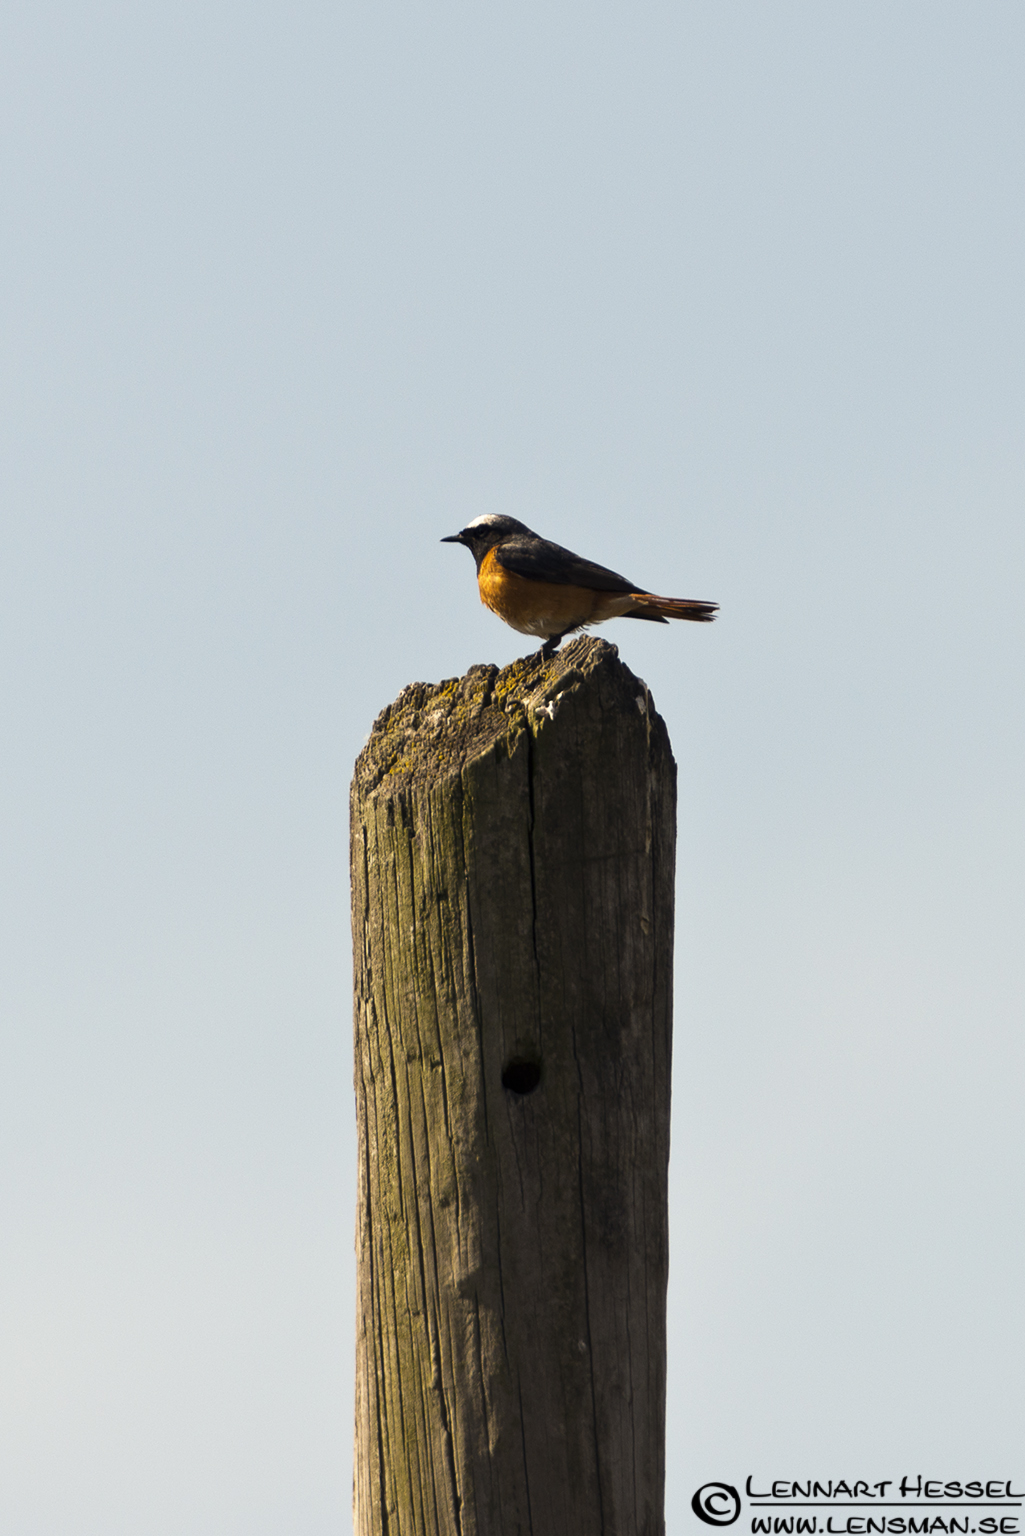 Common Redstart in Piedmont, Italy